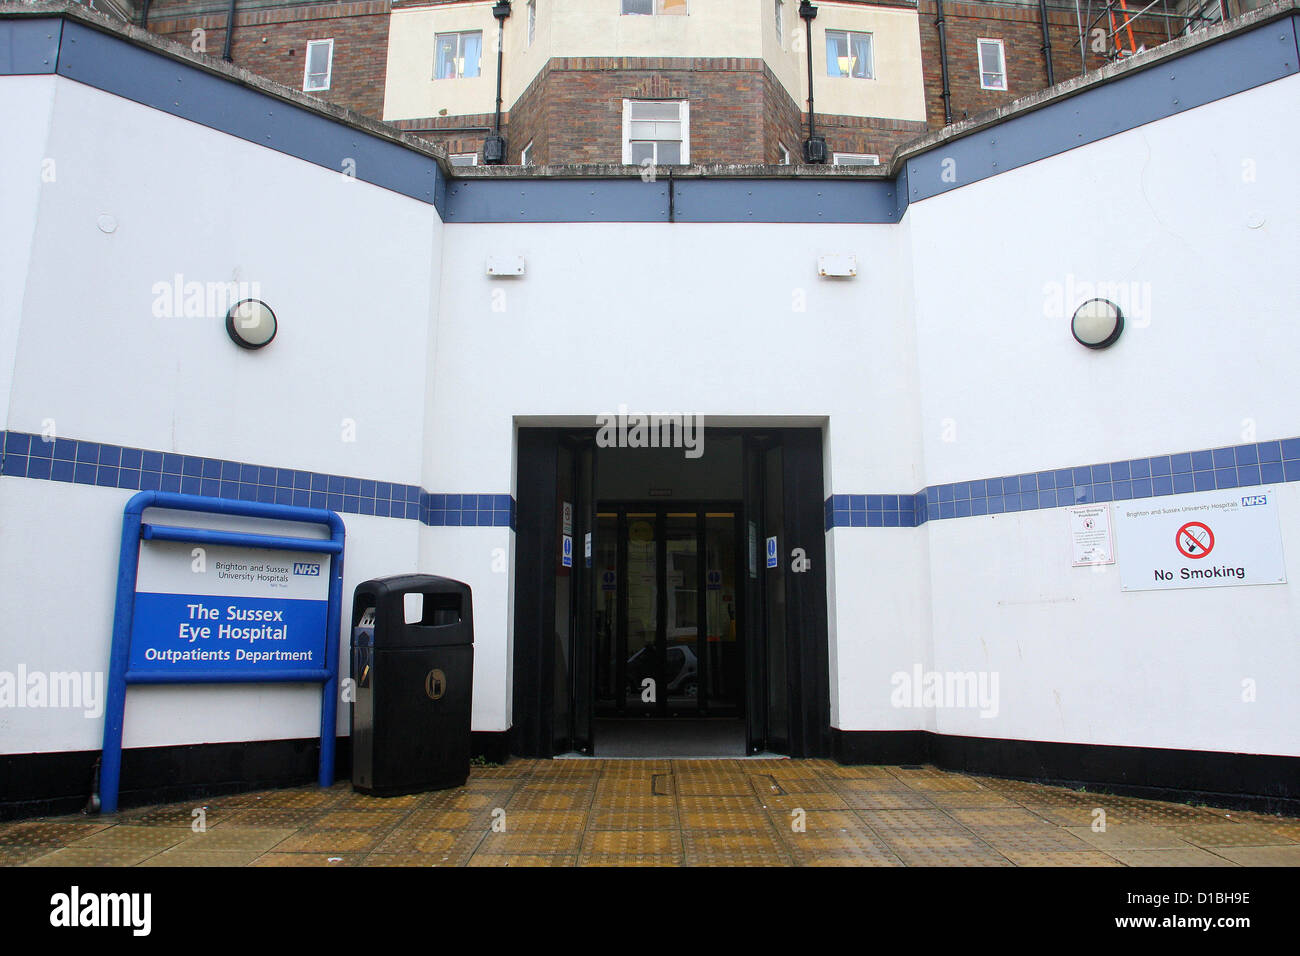 The Sussex Eye Hospital, on the Royal Sussex County Hospital campus in Brighton East Sussex UK - Stock Image